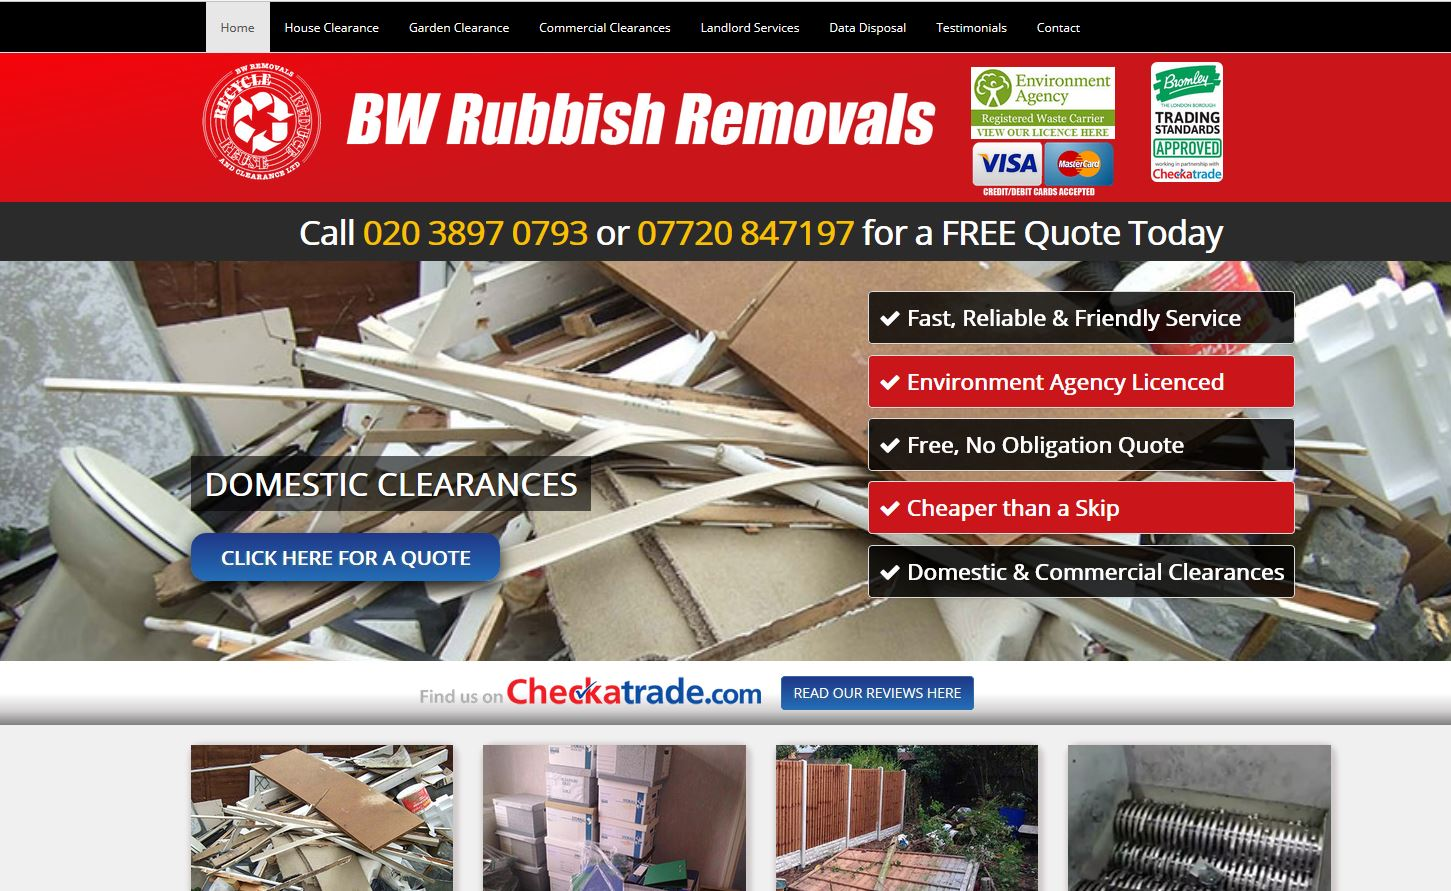 BW Rubbish Removals